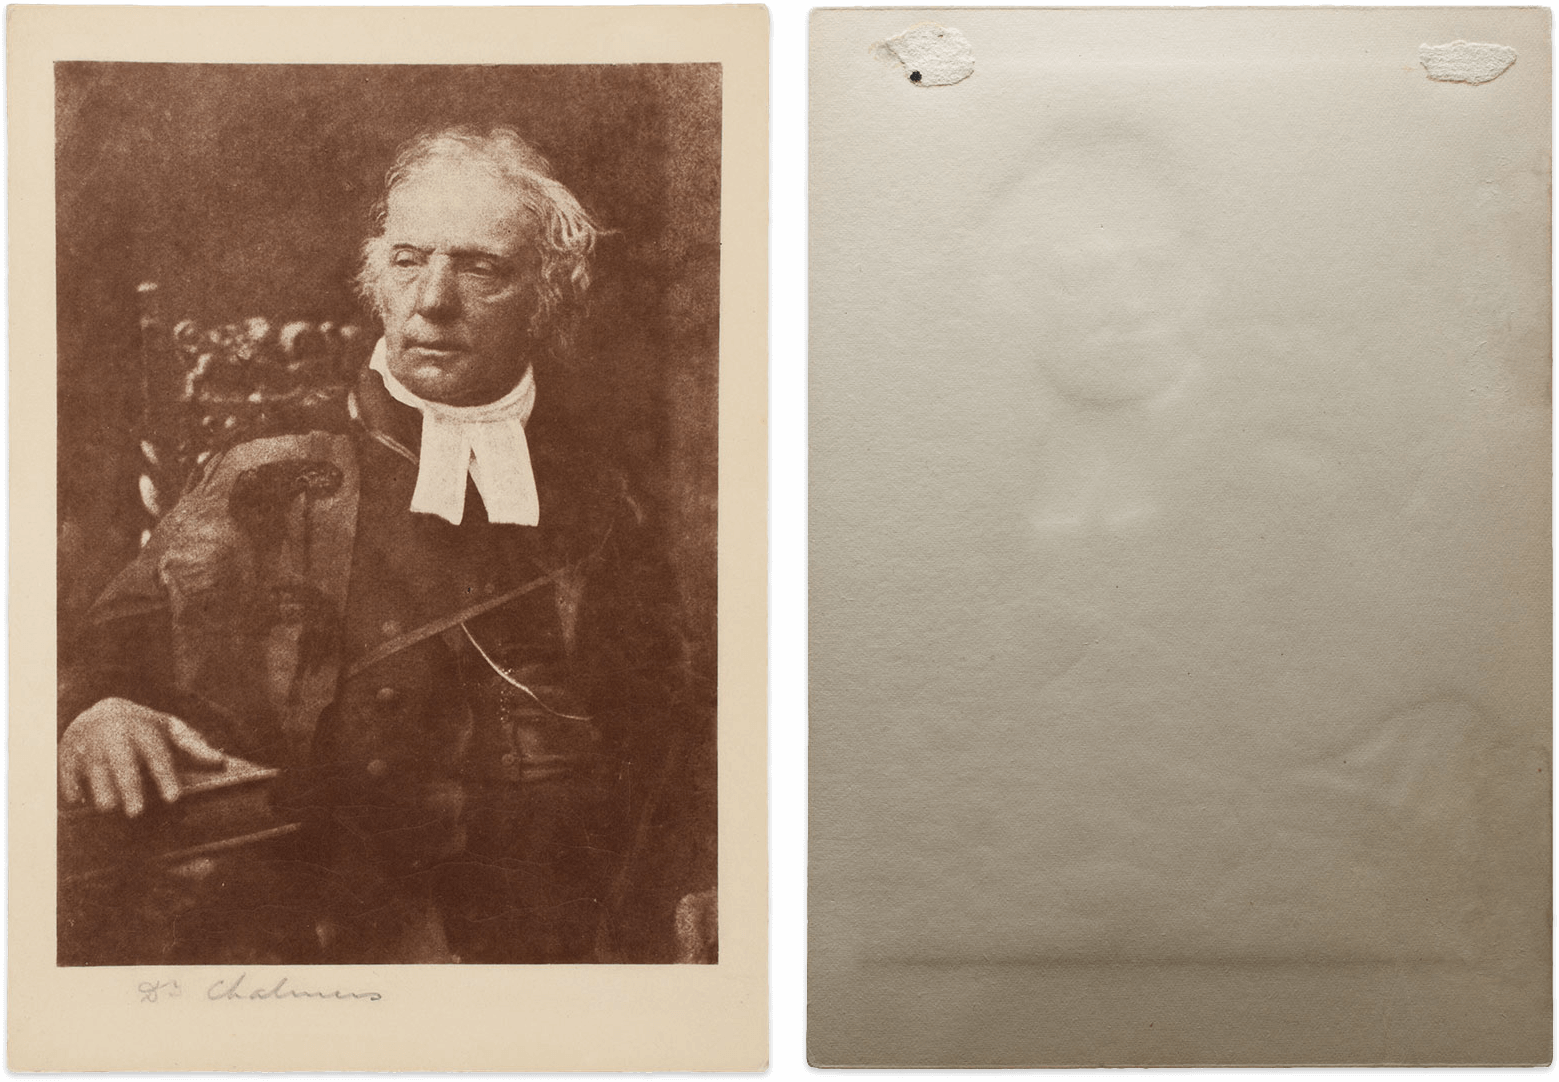 Photograph of Dr. Chalmers, Recto and verso, 1843/46